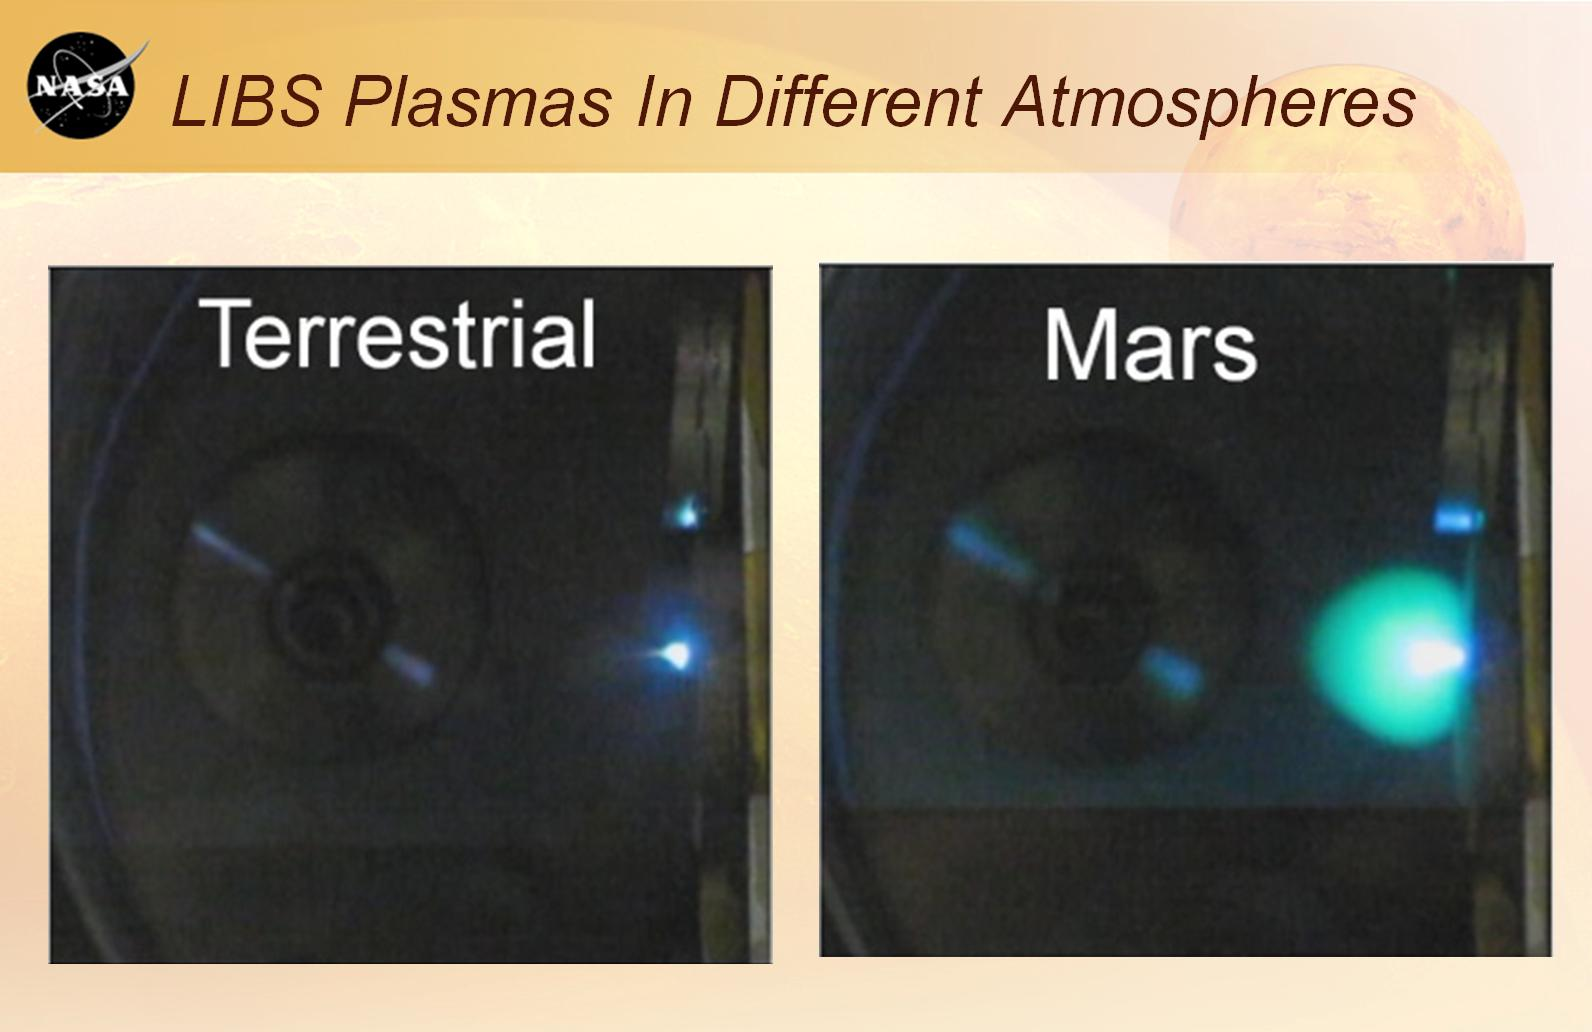 PIA16088: Laser Plasmas on Earth and Mars